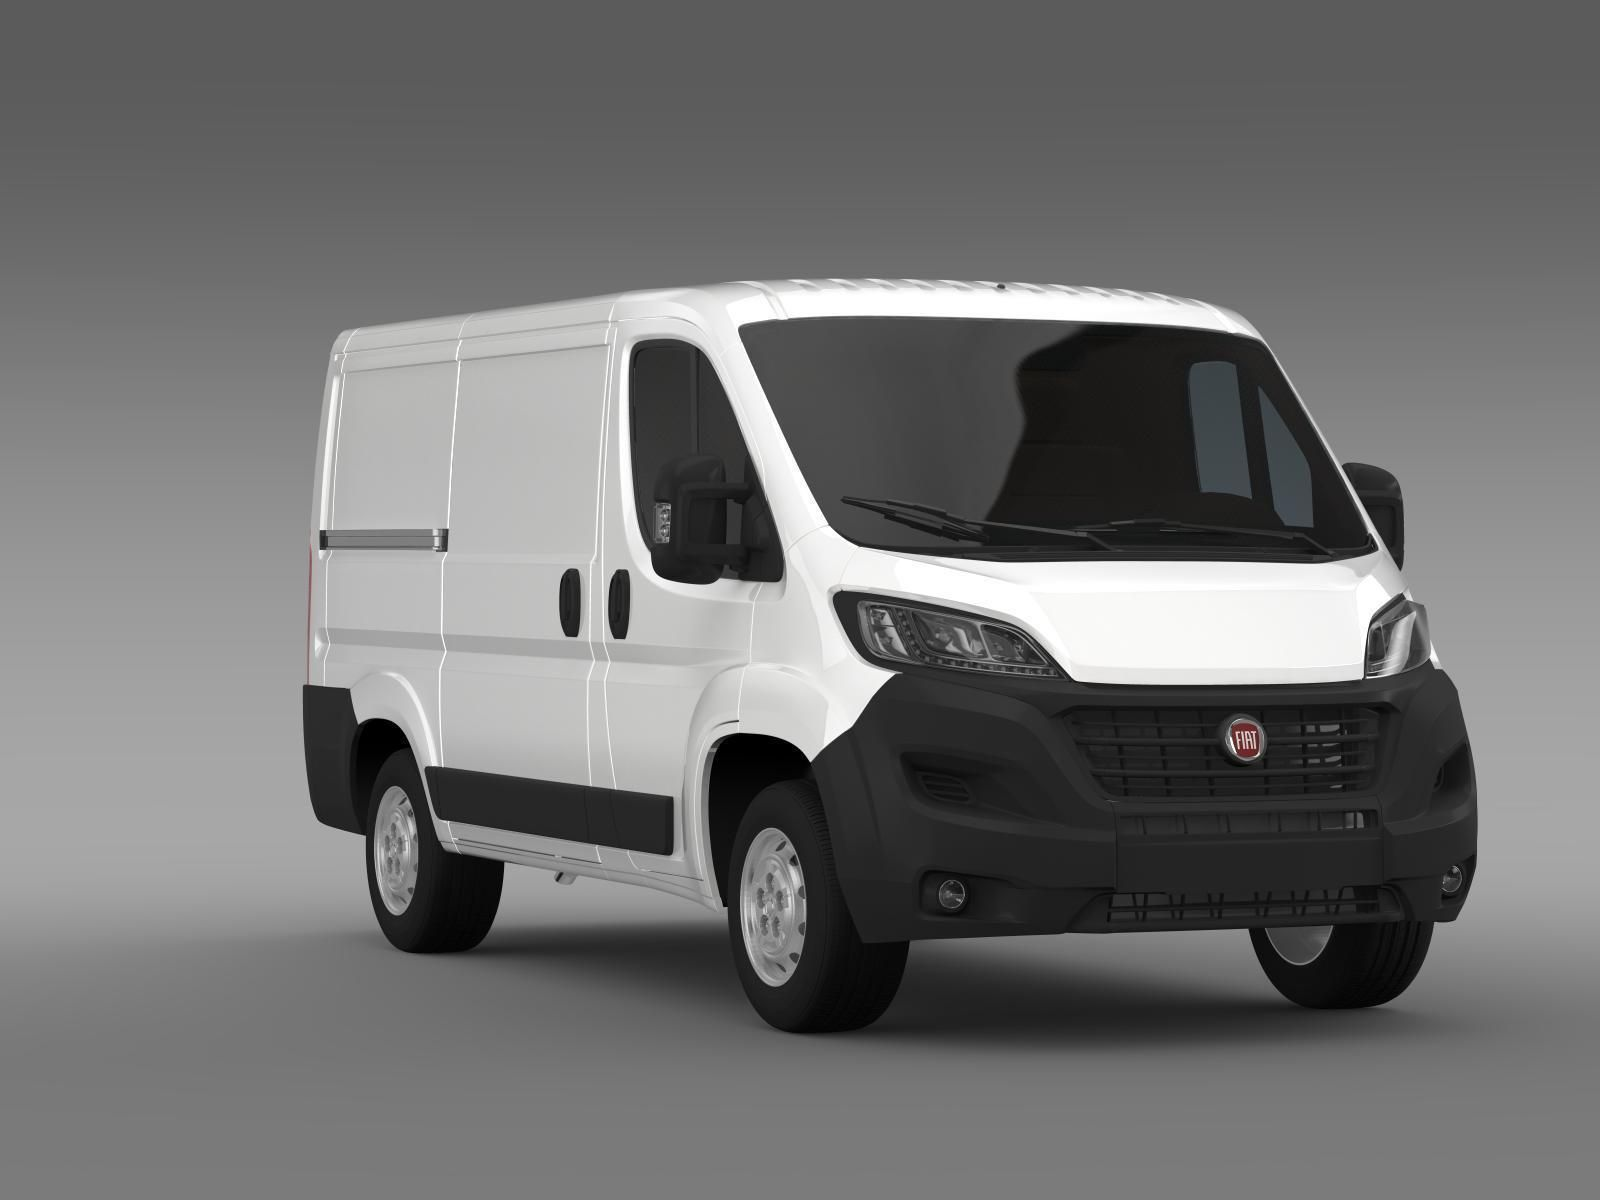 fiat ducato van l1h1 2015 3d model max obj 3ds fbx c4d lwo lw lws. Black Bedroom Furniture Sets. Home Design Ideas